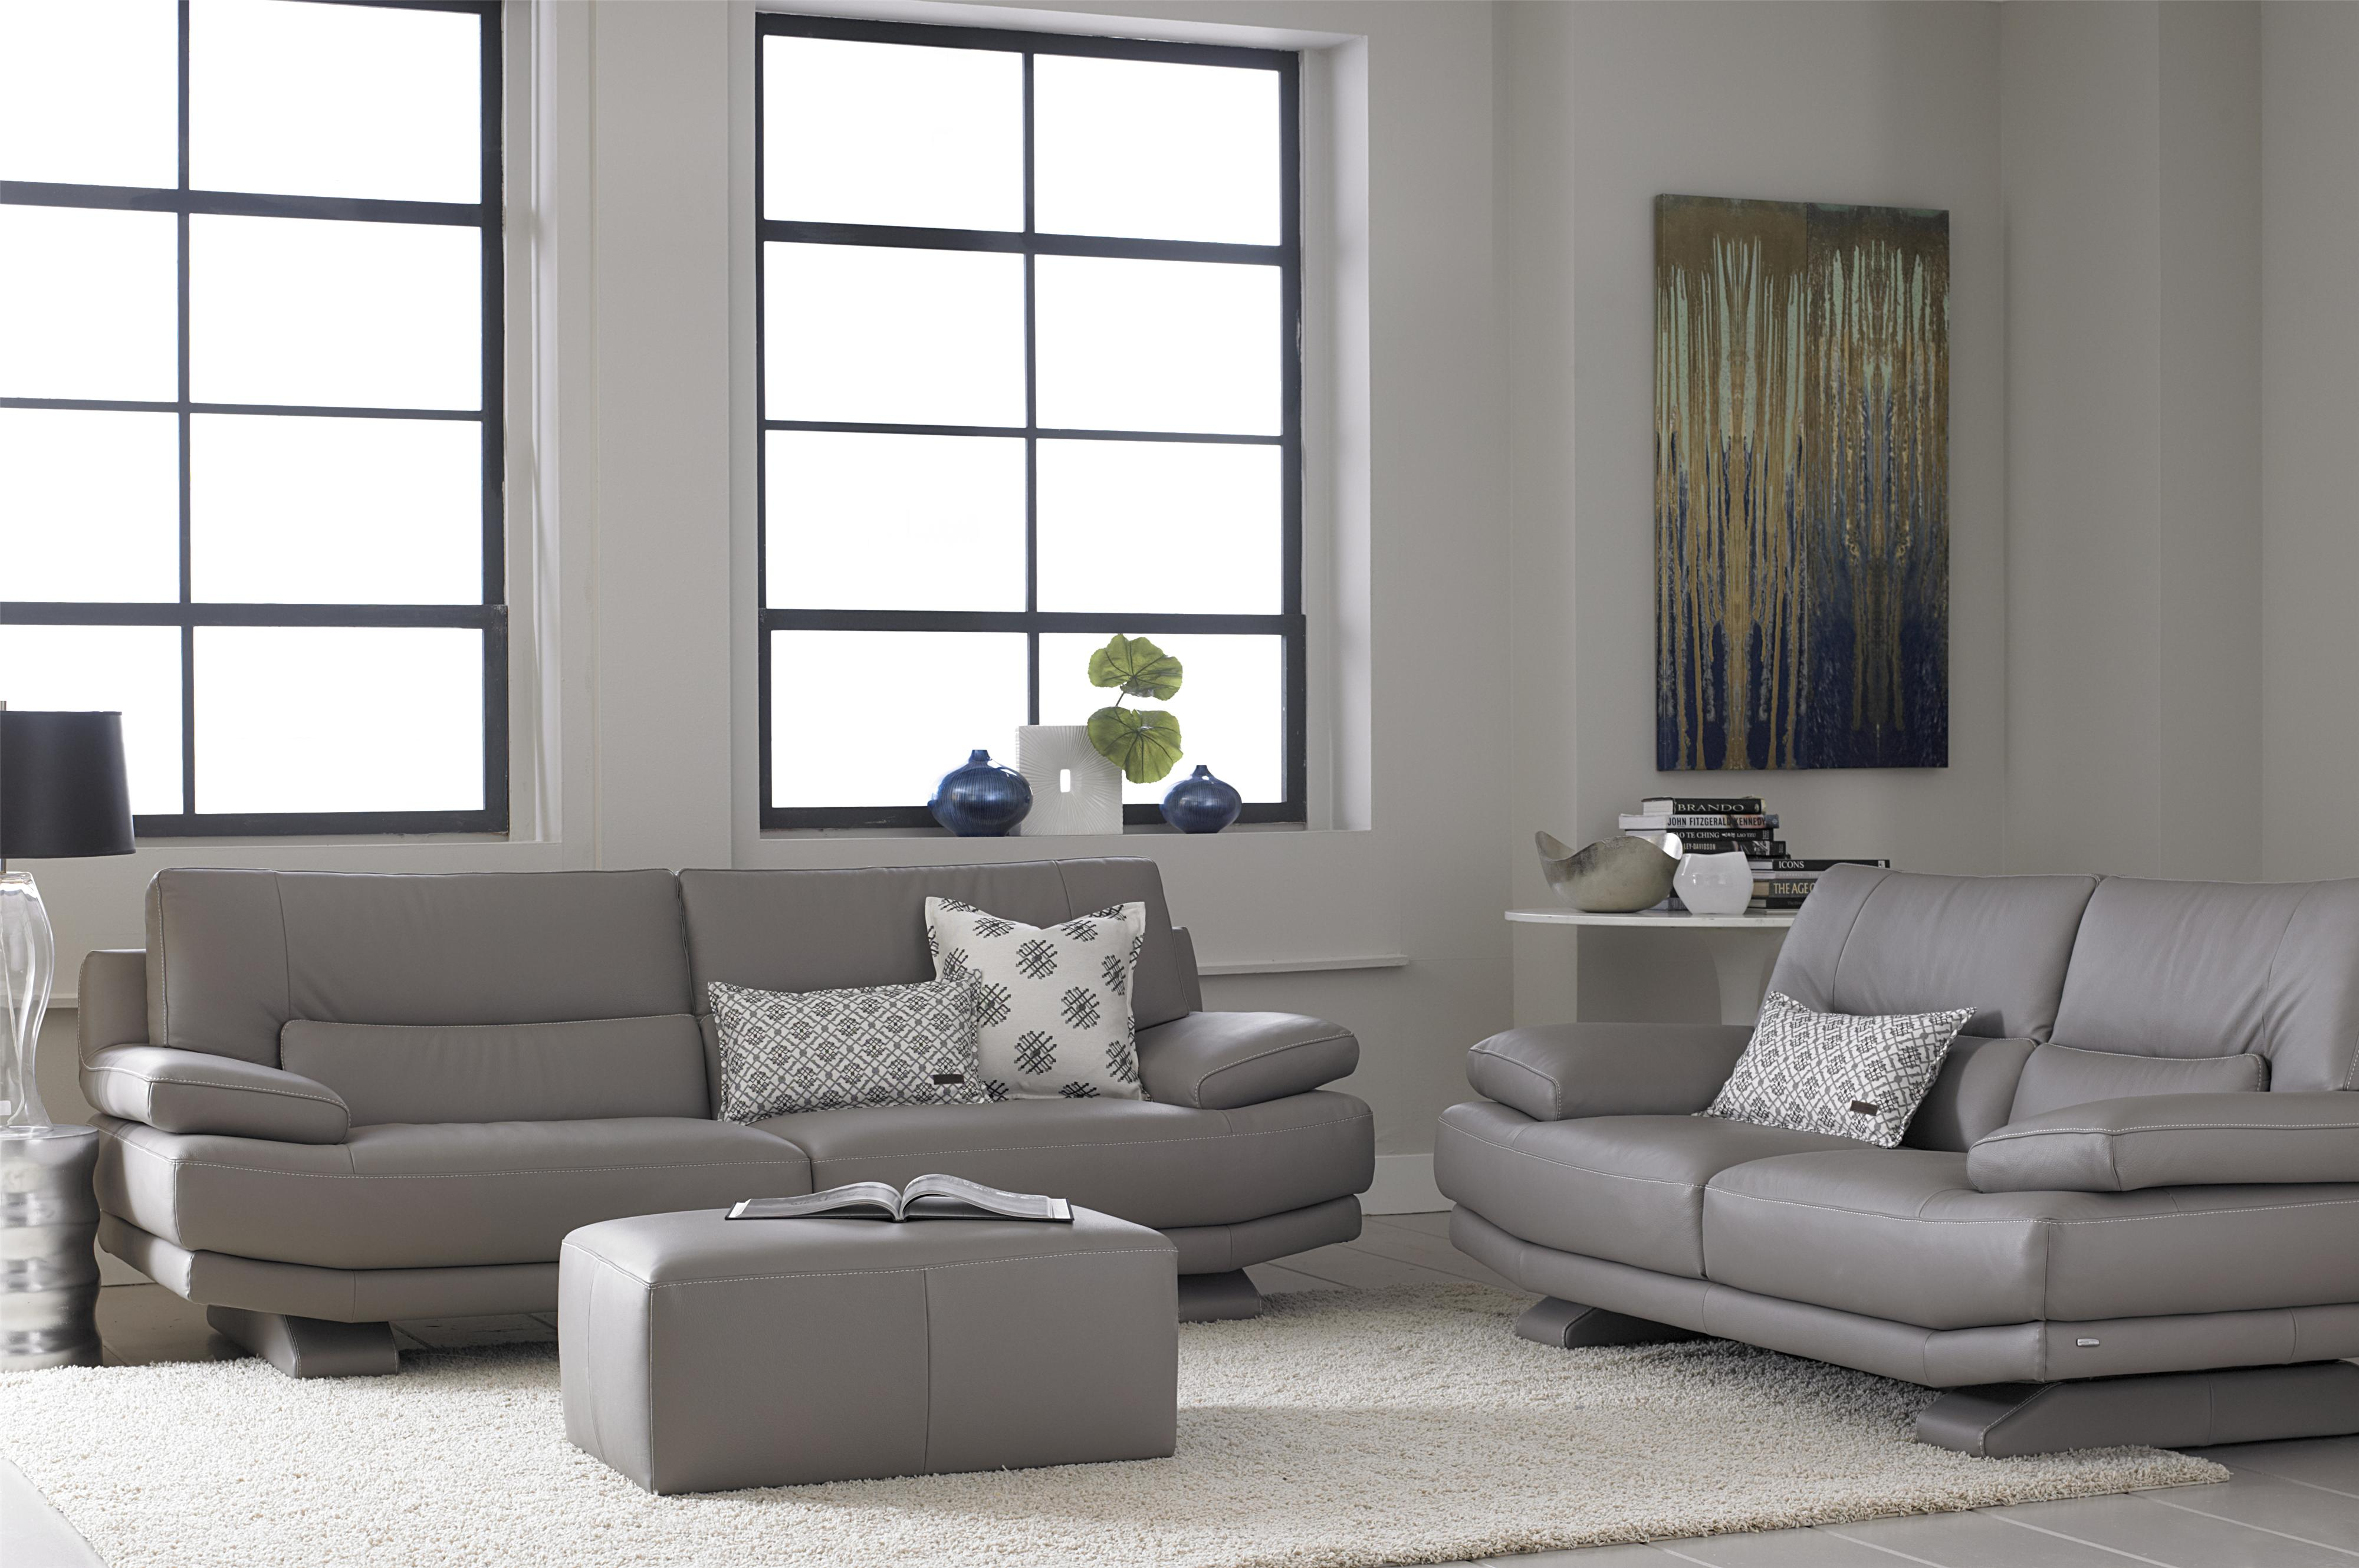 Natuzzi Editions B803 Stationary Living Room Group. Round Living Room Sectionals. Glass Side Tables For Living Room. Living Room International. Simmons Living Room Set. Living Room Decorating Ideas Images. Wallpaper Murals For Living Room. Kitchen Living Room Divider. Used Living Room Sets For Sale